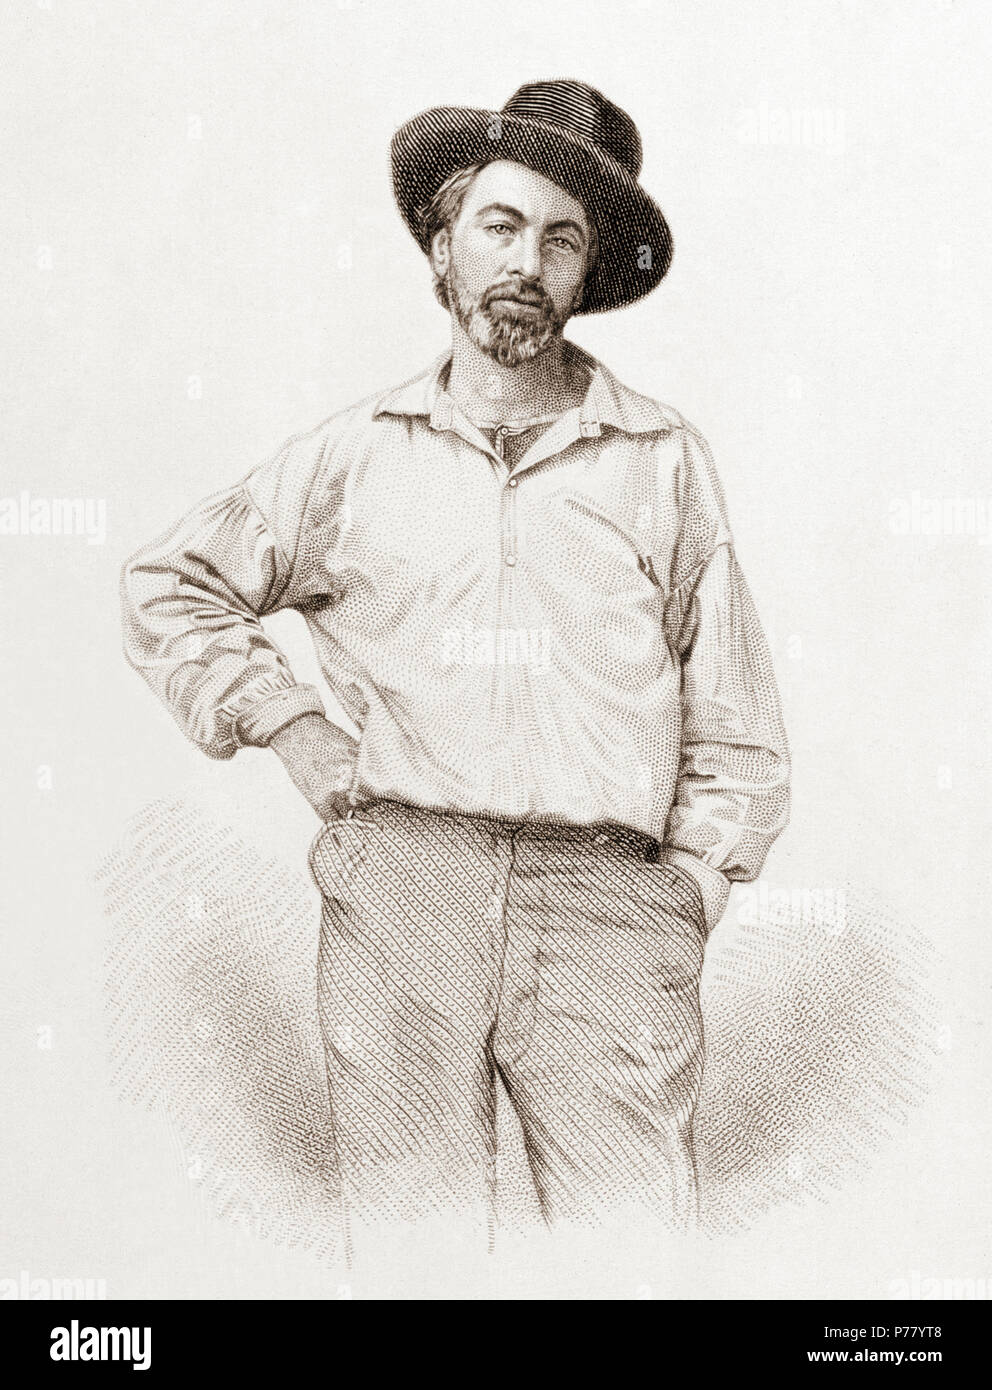 Walt Whitman (1819-1892), age 37, frontispiece to Leaves of grass, Fulton St., Brooklyn, N.Y., 1855, steel engraving by Samuel Hollyer from a lost daguerreotype by Gabriel Harrison. . July 1854 69 Walt Whitman, steel engraving, July 1854 - Stock Image